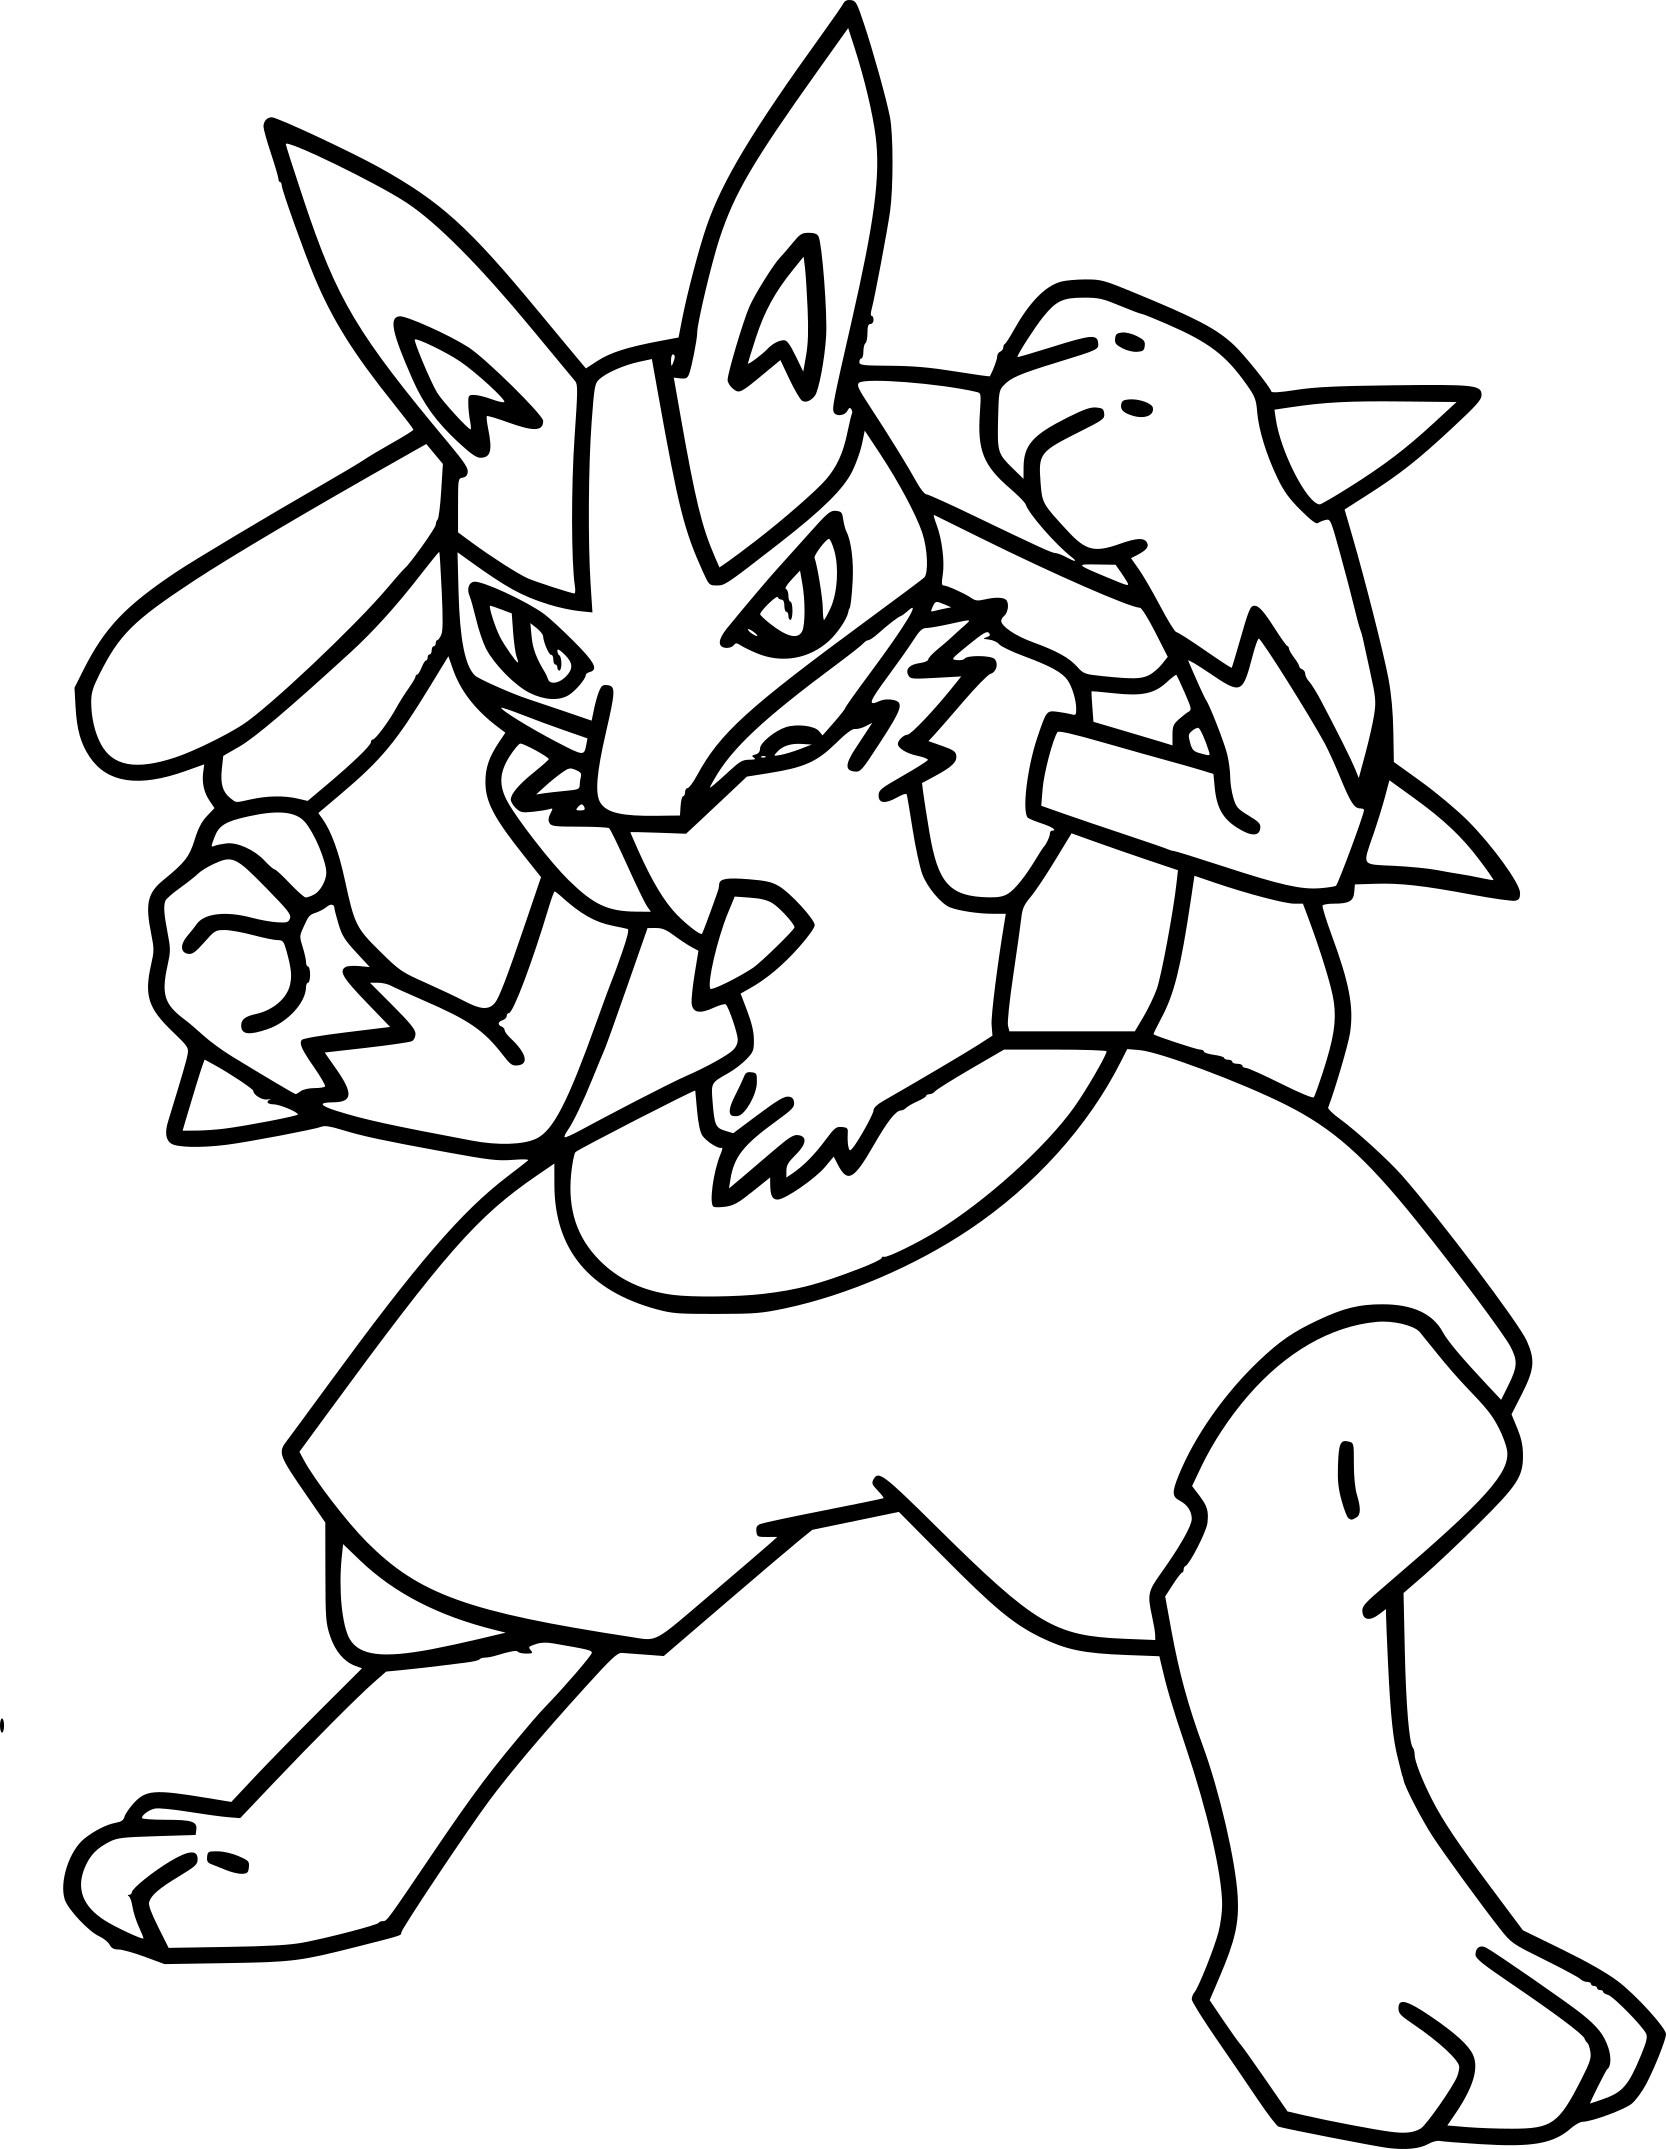 Pokemon Ausmalbilder Mega Lucario : 28 Hair Coloring Pages Collections Free Coloring Pages Part 2